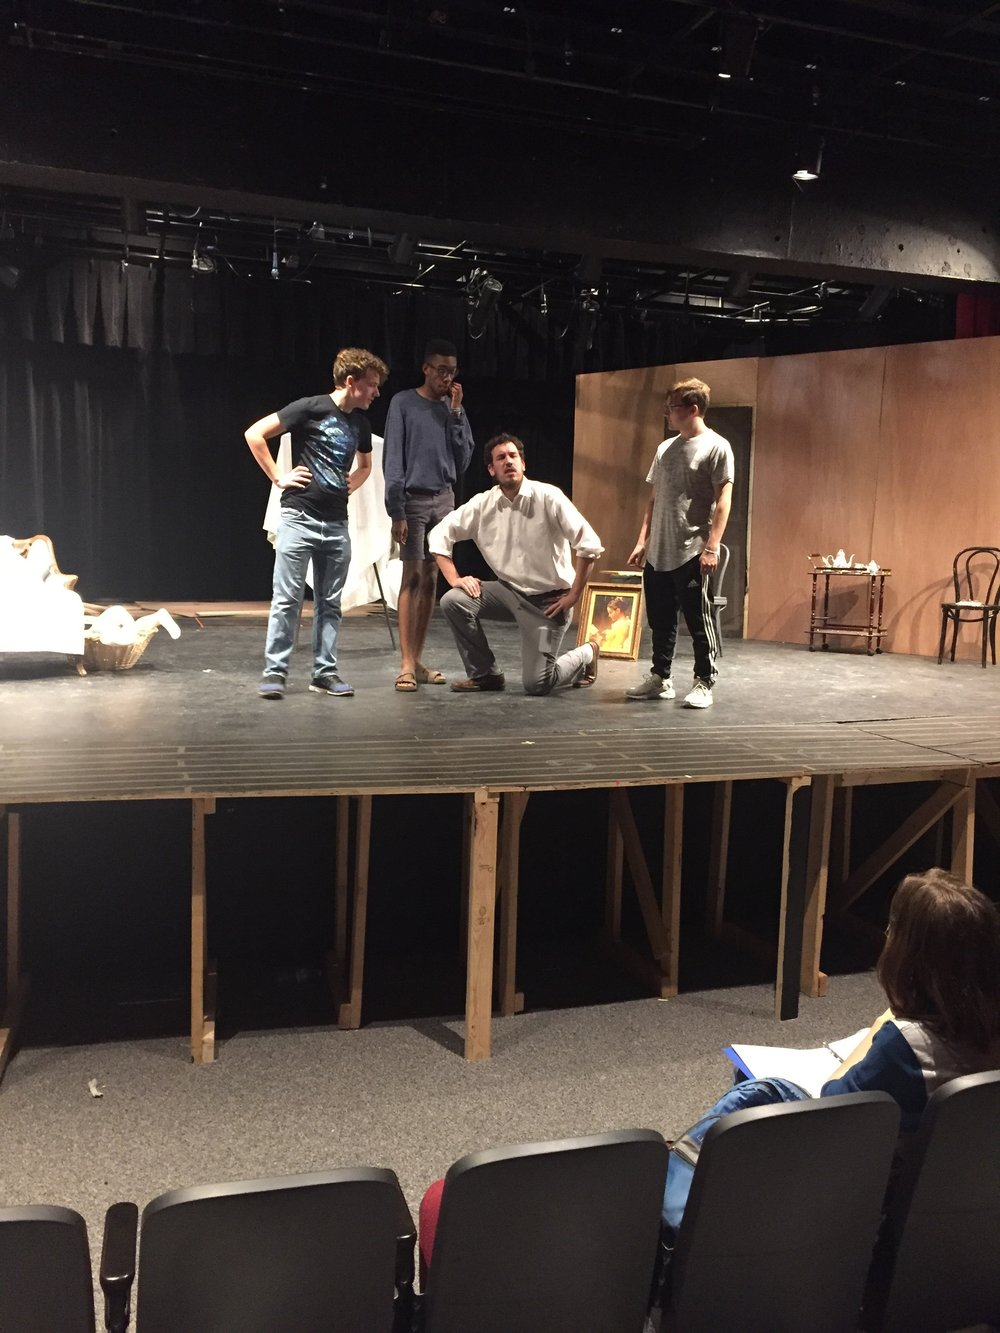 Director Jeff White works with 3 actors onstage.